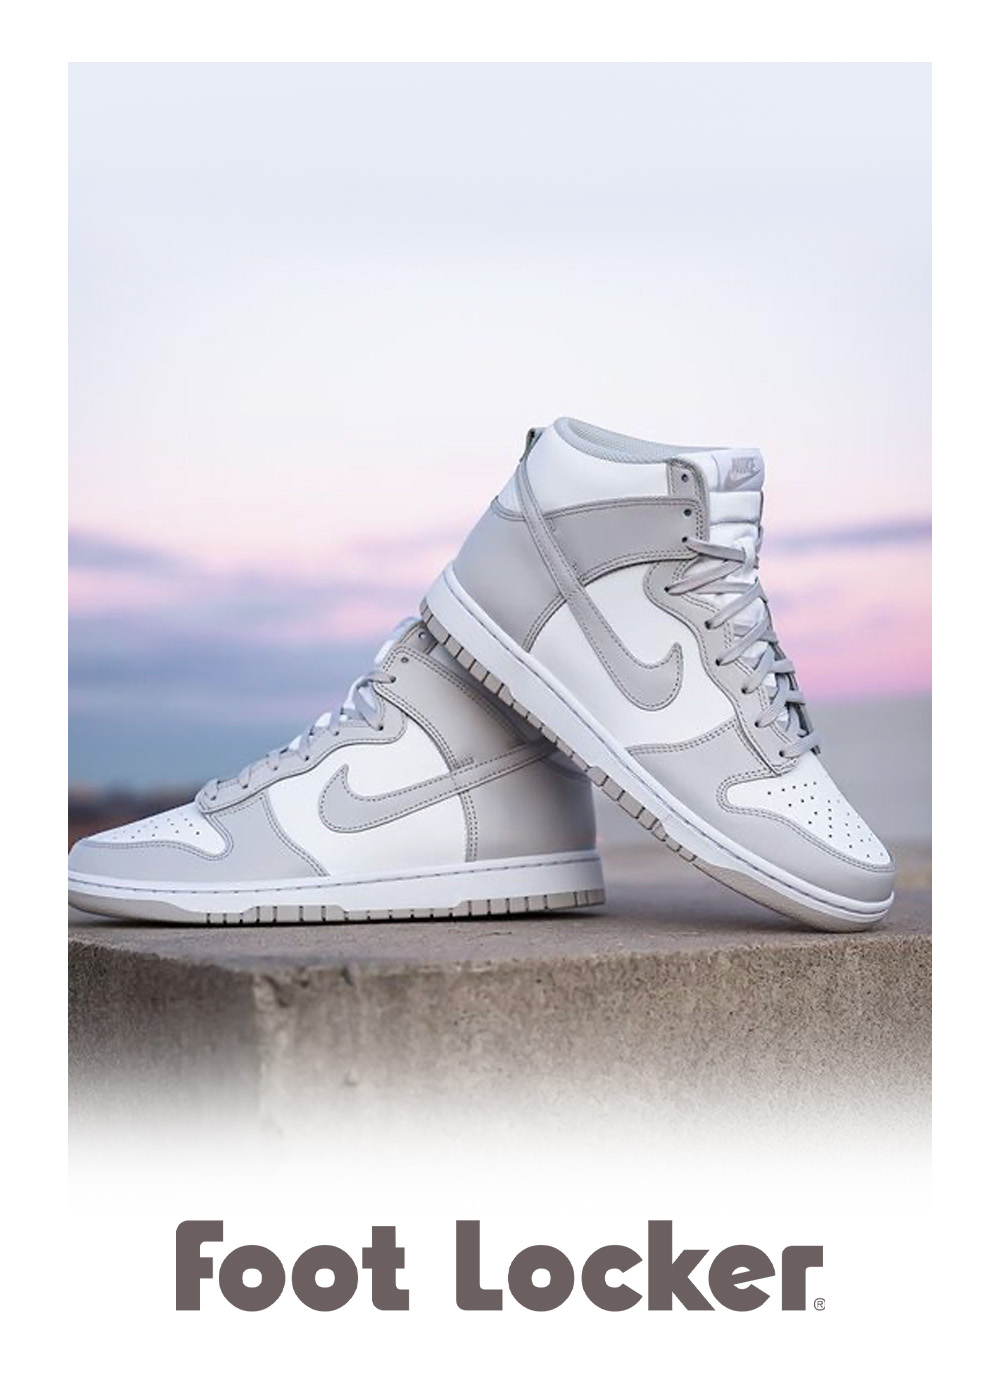 The New Nike Dunk